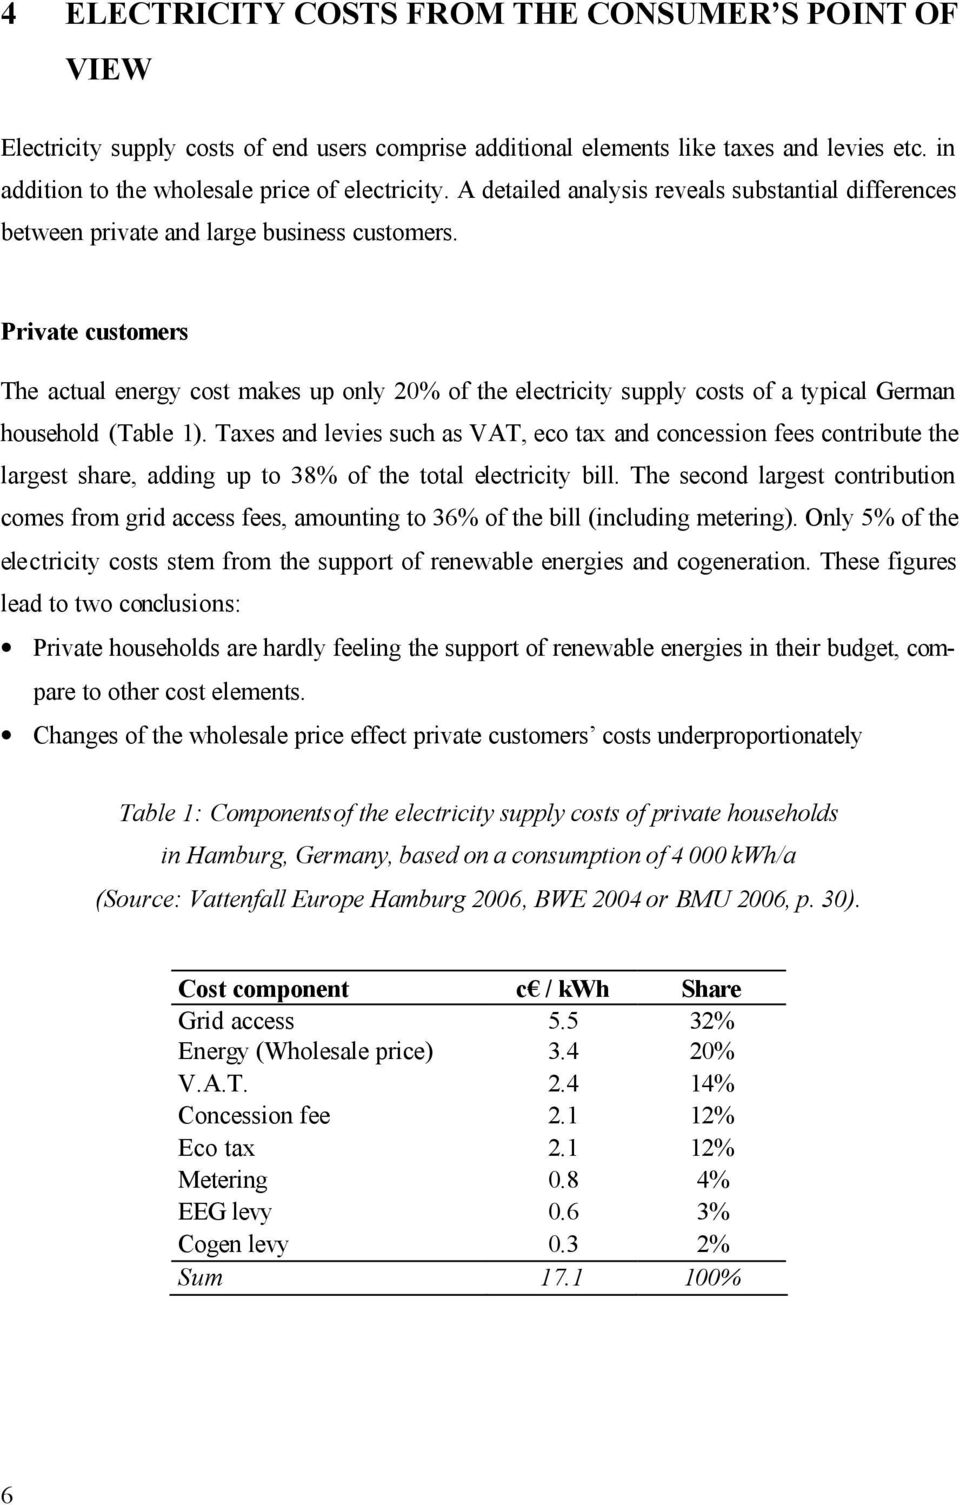 Private customers The actual energy cost makes up only 20% of the electricity supply costs of a typical German household (Table 1).